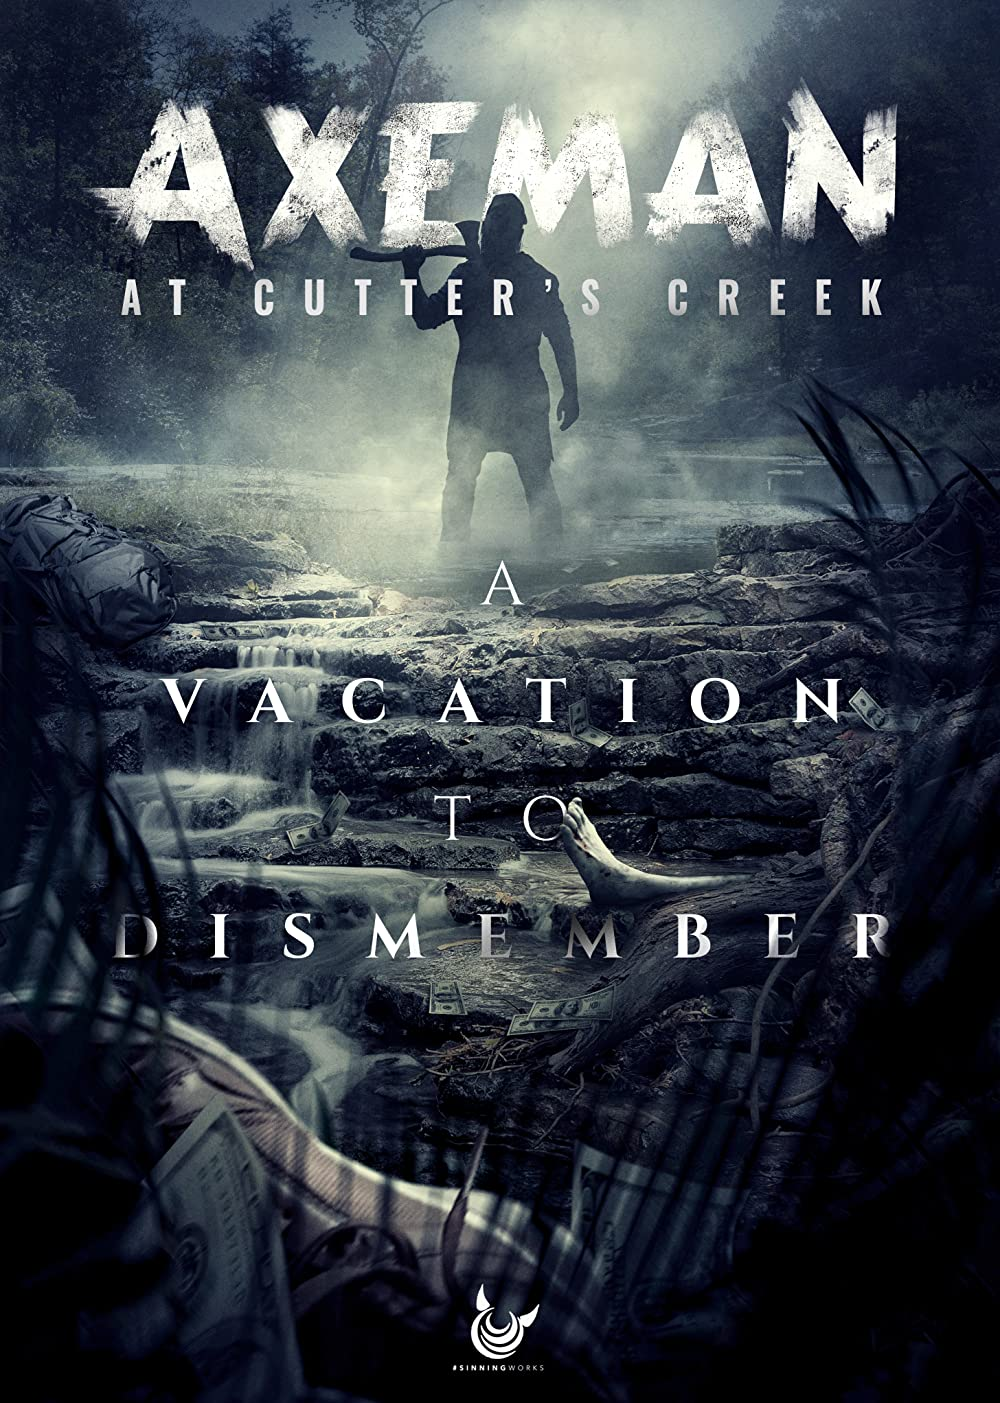 Axeman at Cutters Creek 2021 English 1080p HDRip ESubs 1.41GB Download